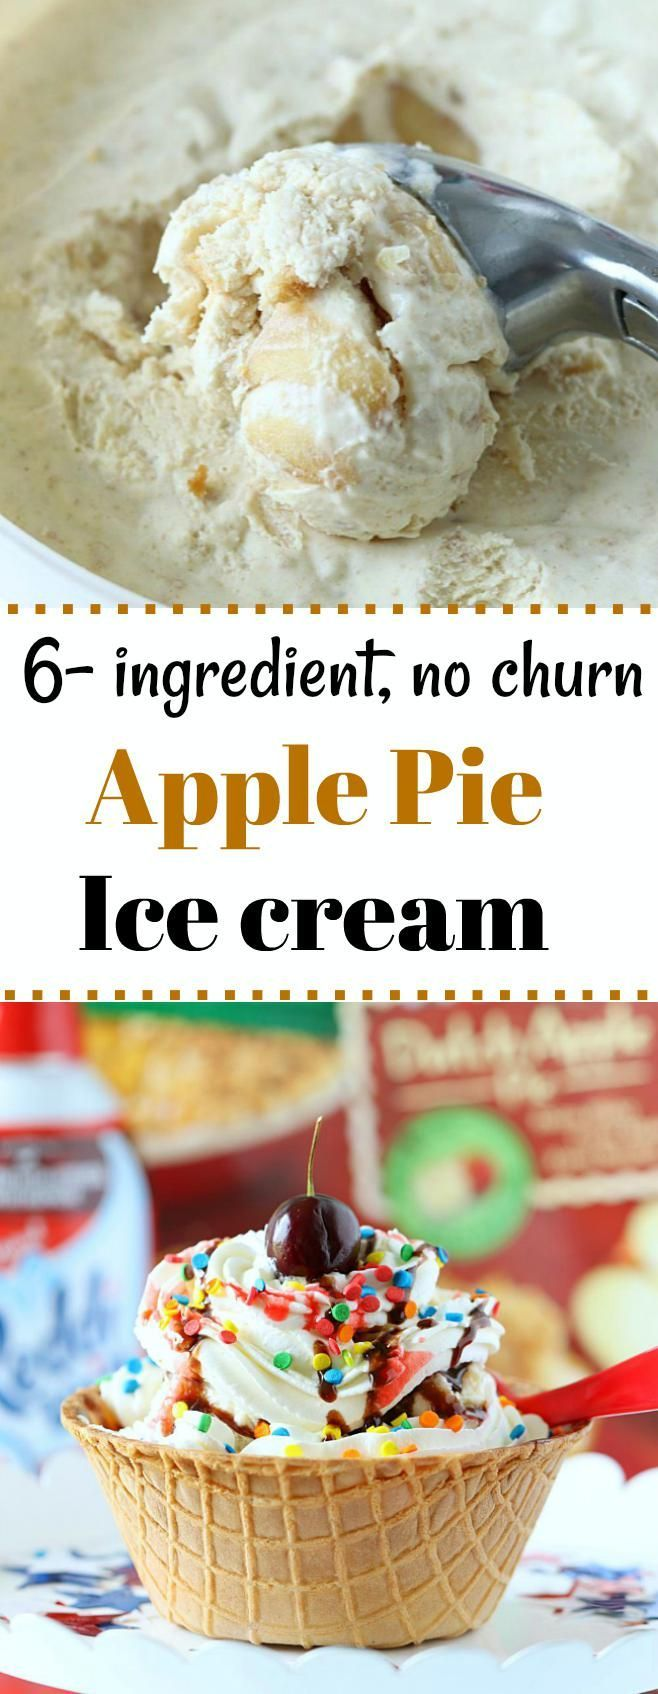 Do you love Apple Pie? Then this 6-ingredient creamy and delicious No Churn Apple Pie Ice Cream is a perfect way to satisfy your craving. A must-have summer treat!